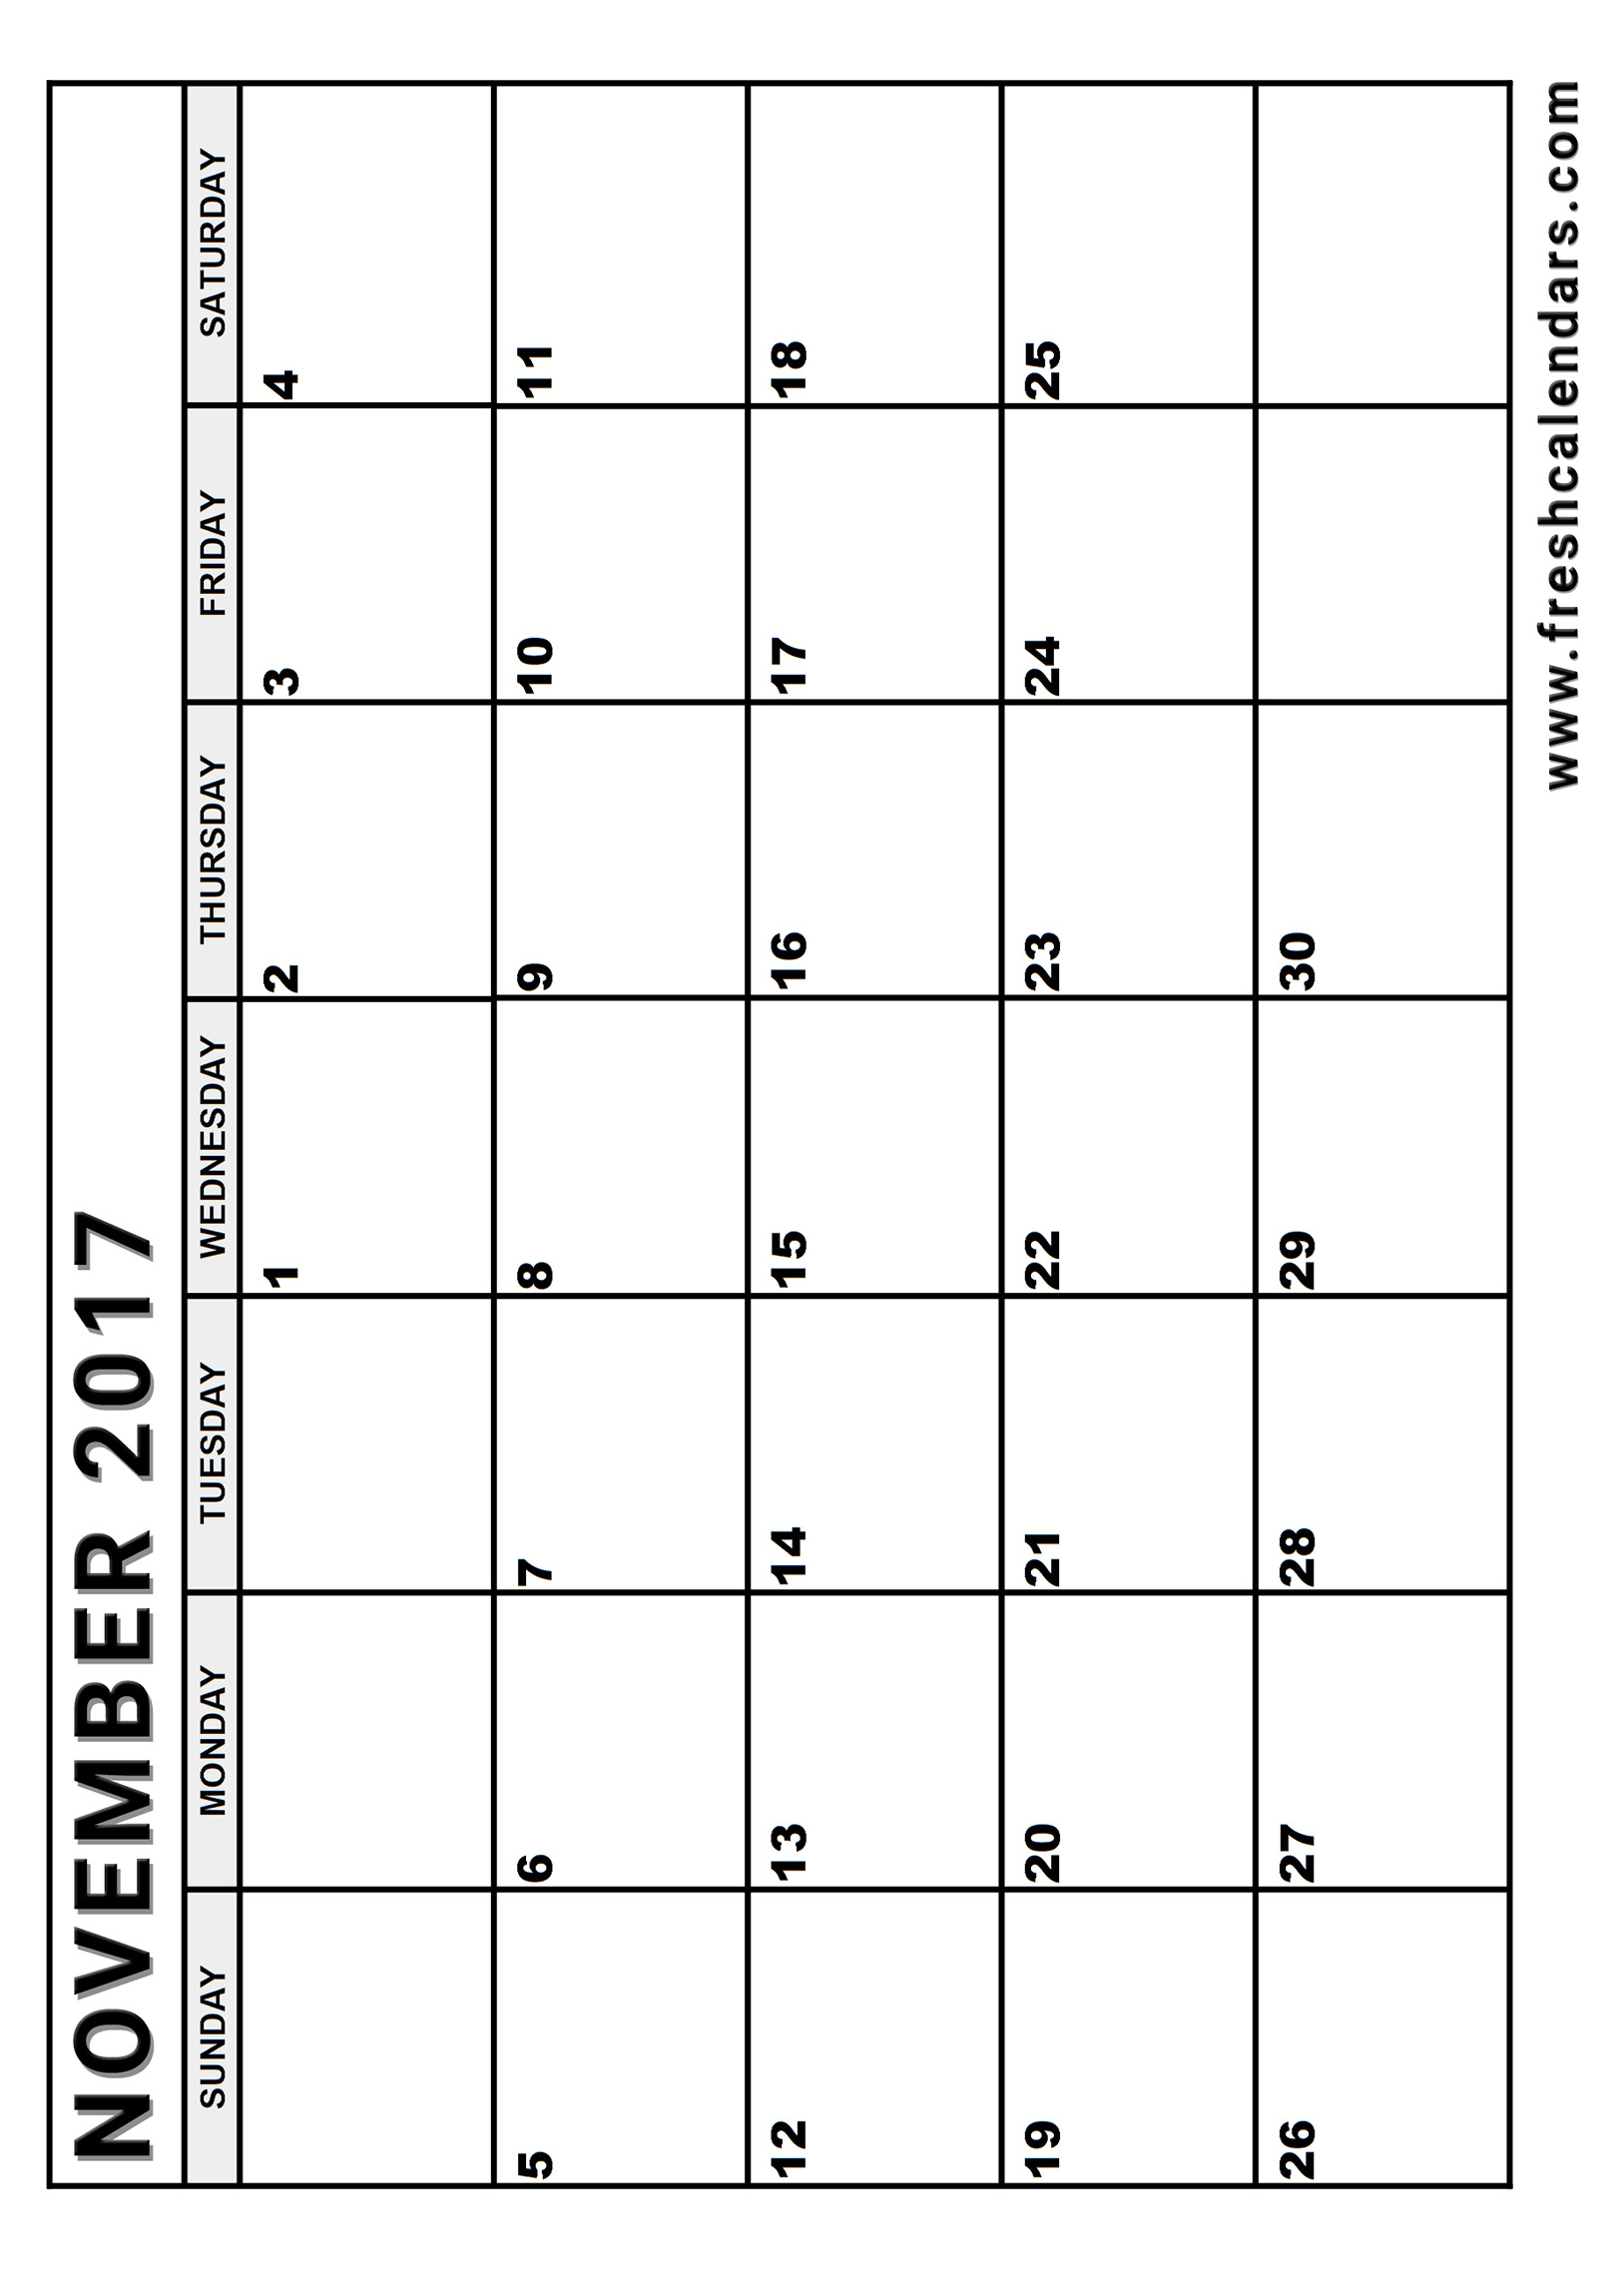 photo about Printable November Calendars identify November 2017 Calendar Printable Templates